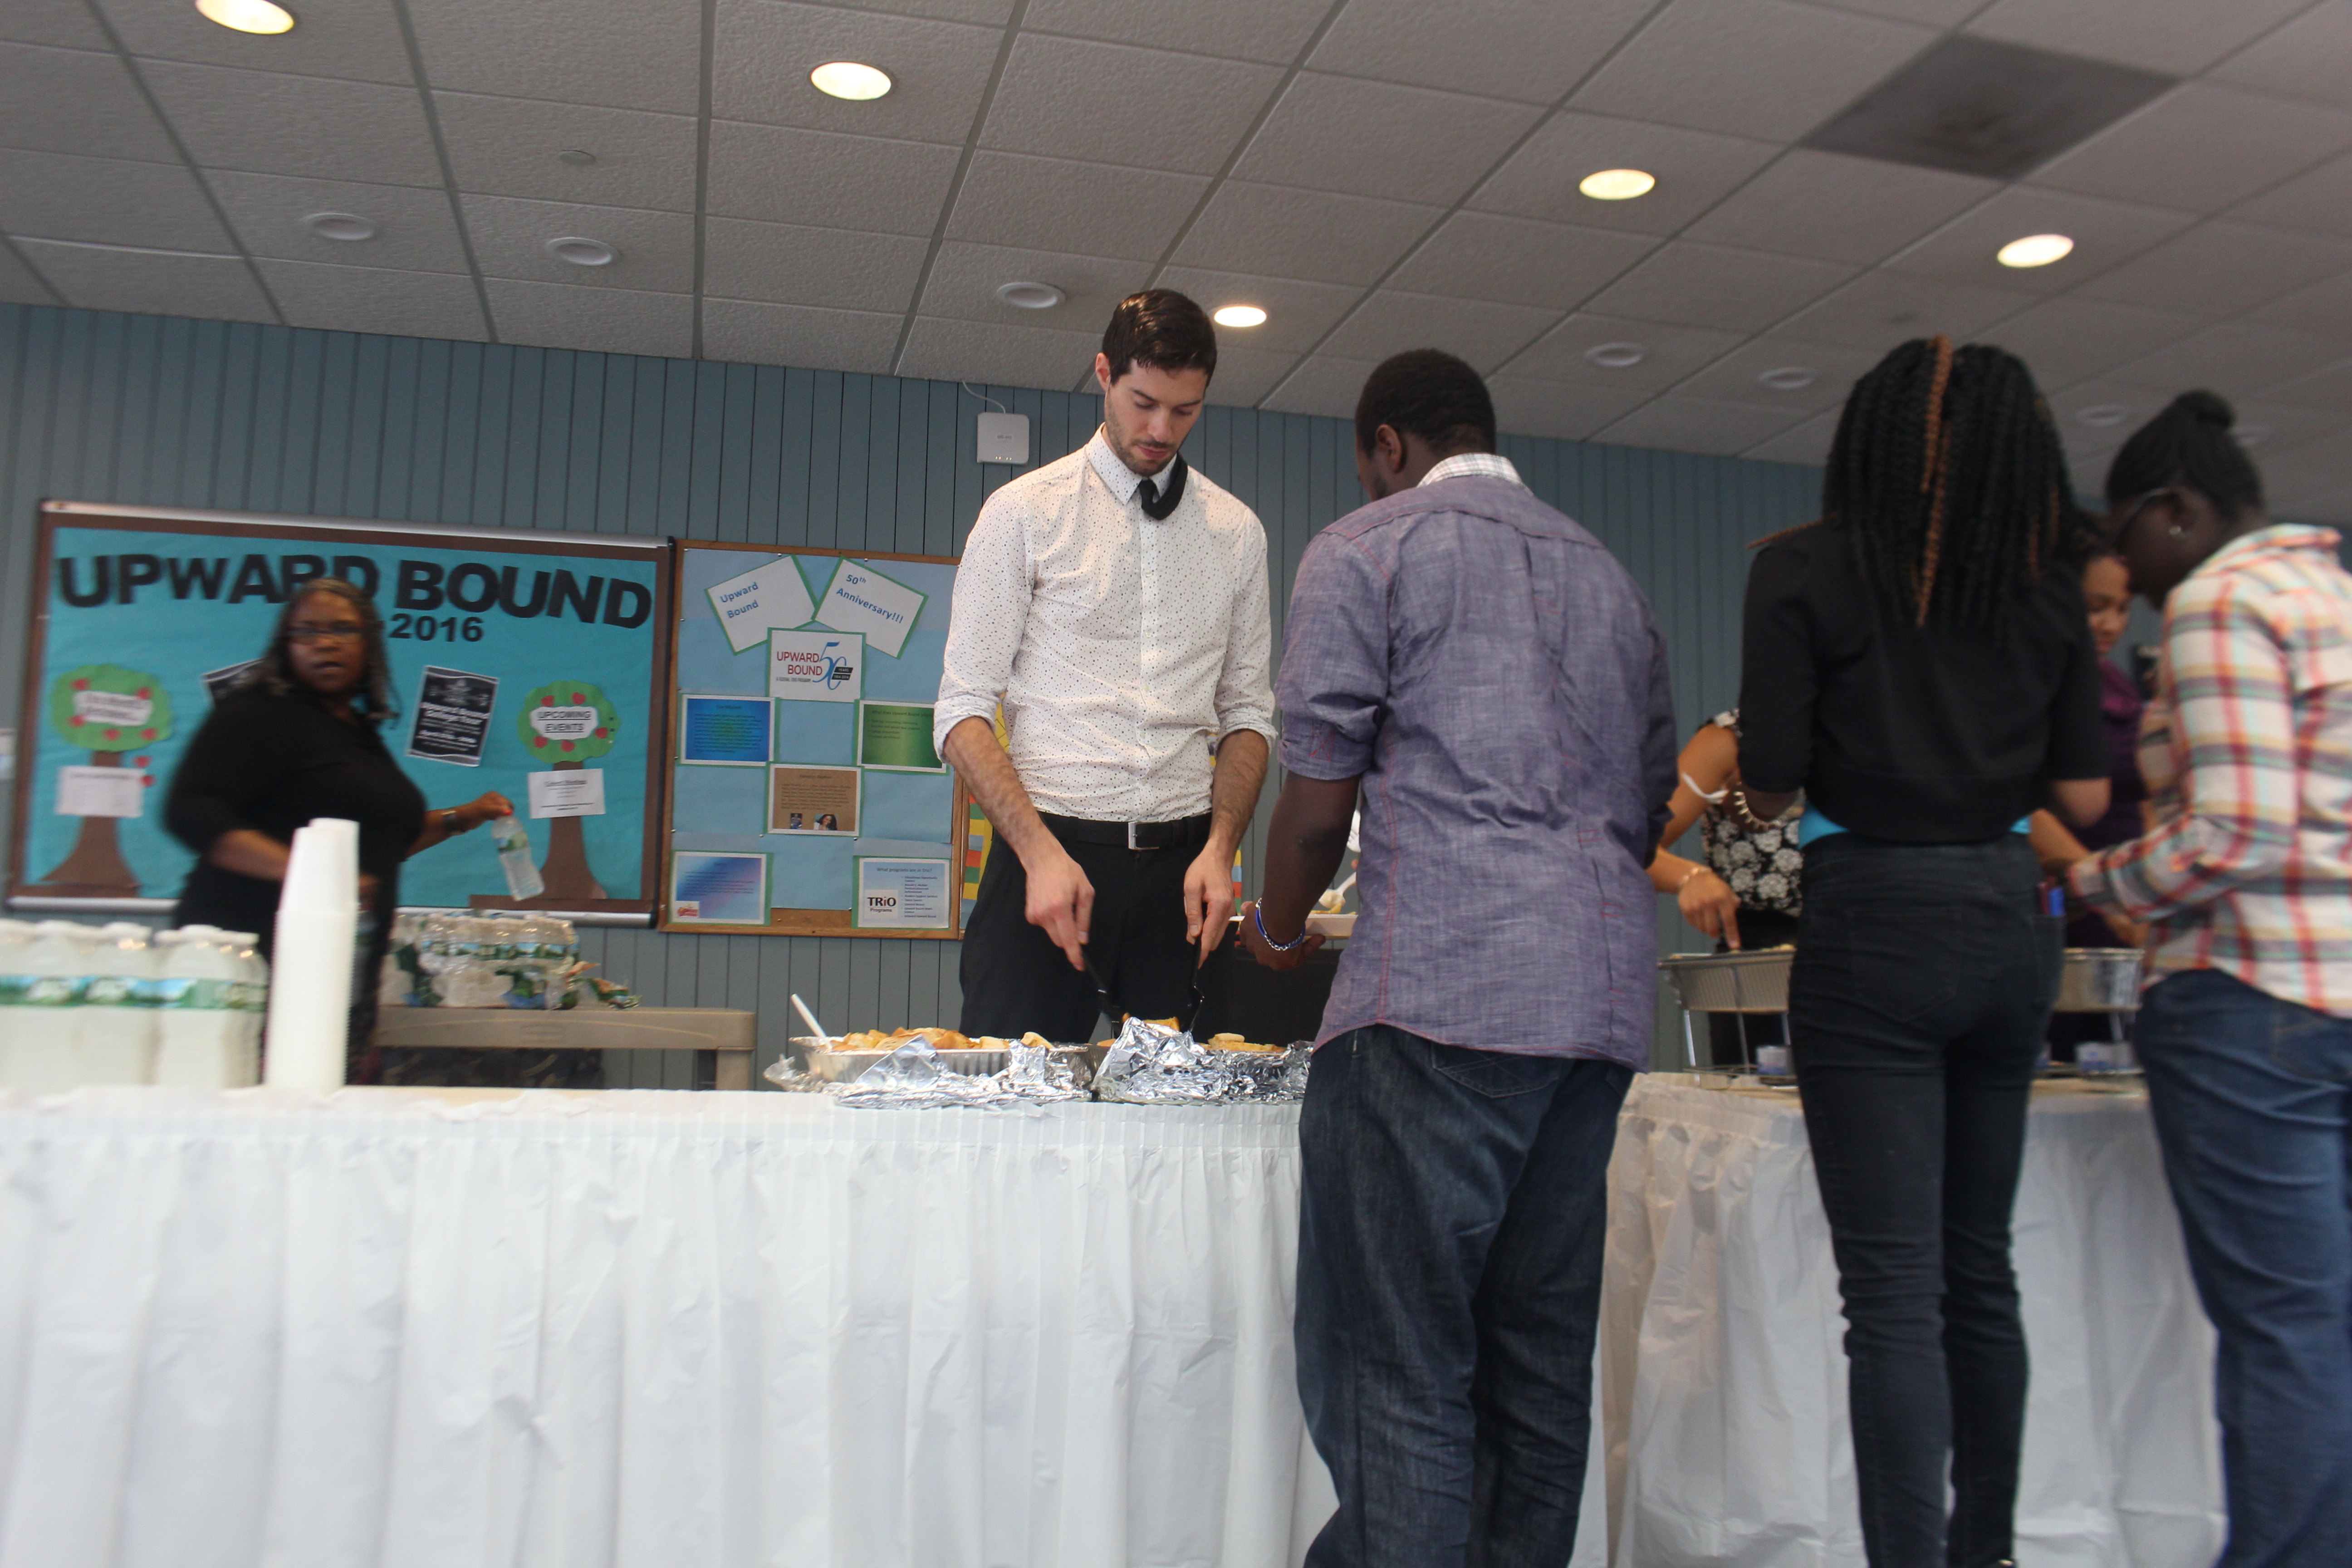 Jeff helped serve food to all the guests.